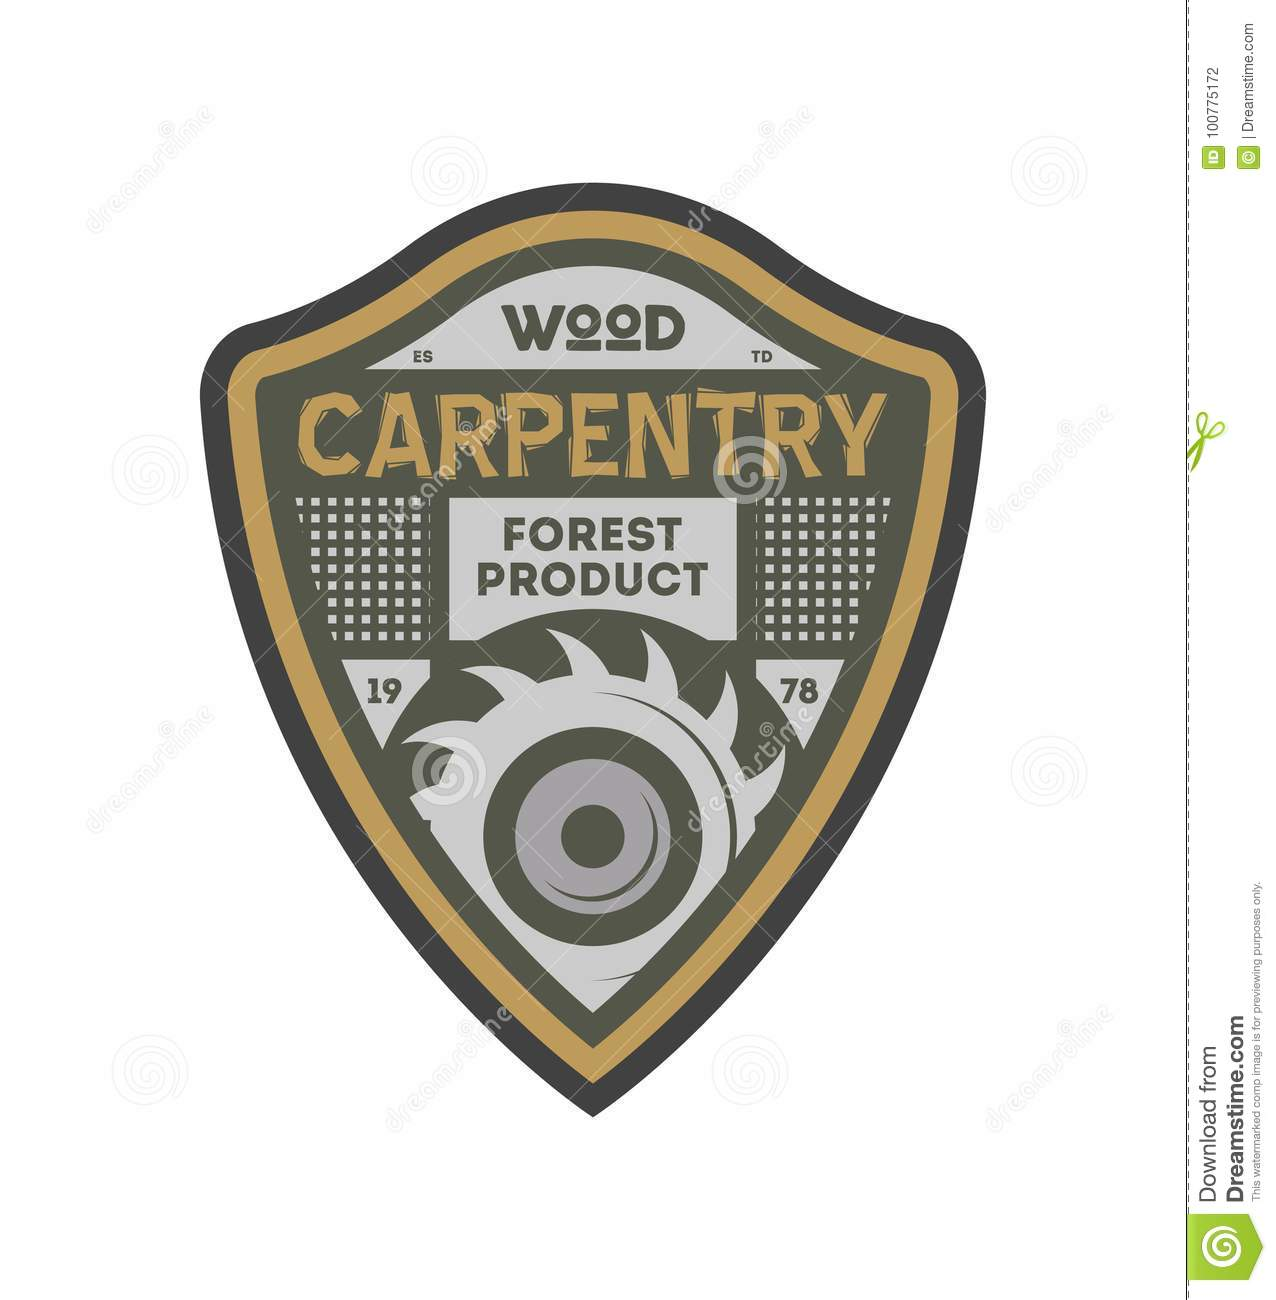 Wood Carpentry Vintage Isolated Label Stock Vector Illustration Of